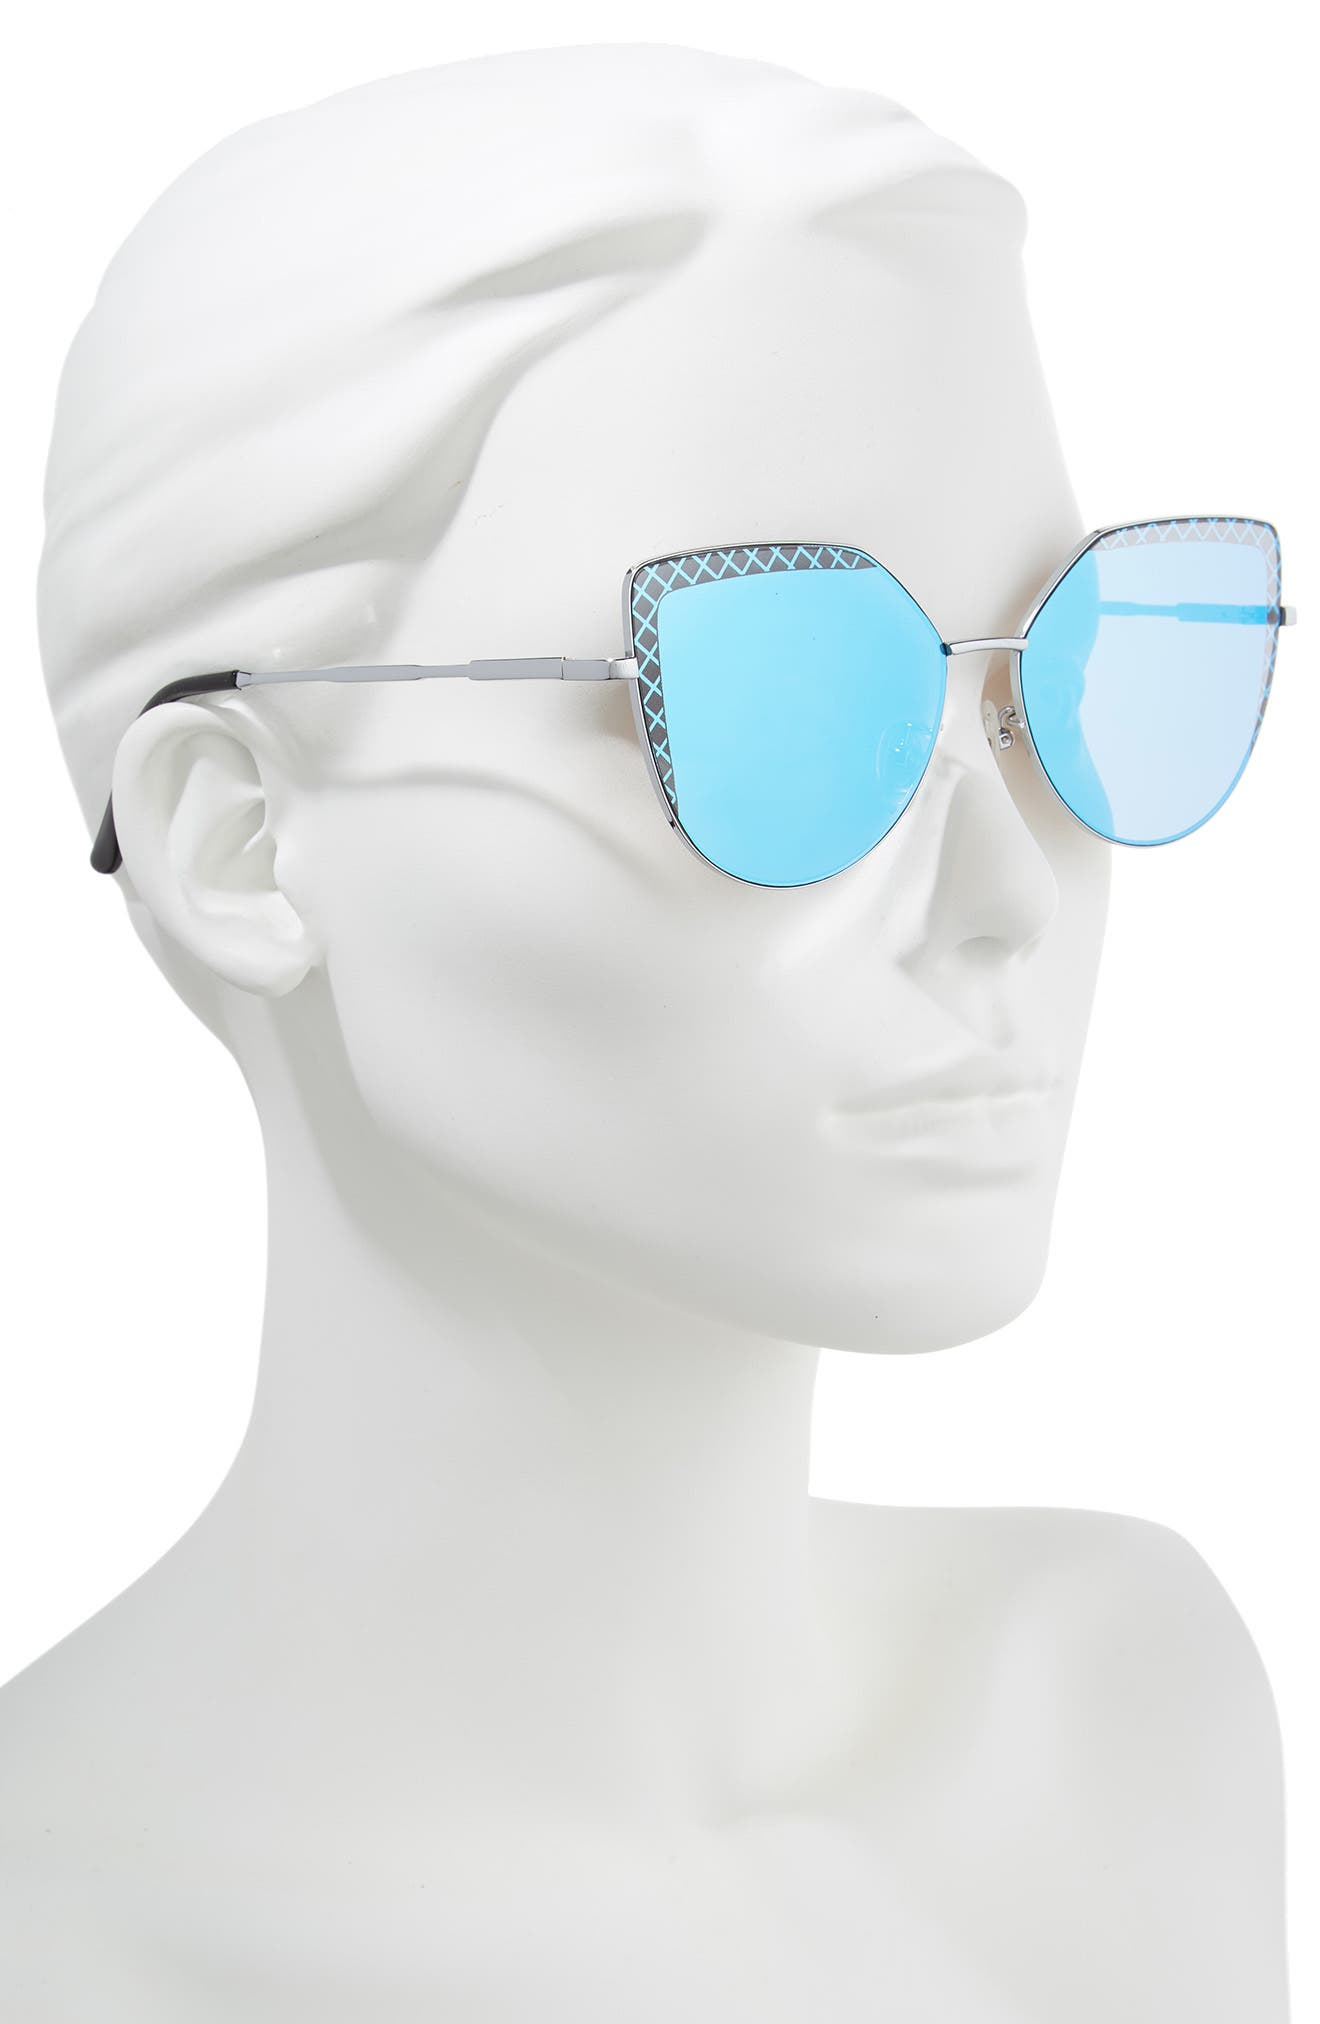 LEITH, 60mm Textured Lens Cat Eye Sunglasses, Alternate thumbnail 2, color, SILVER/ BLUE